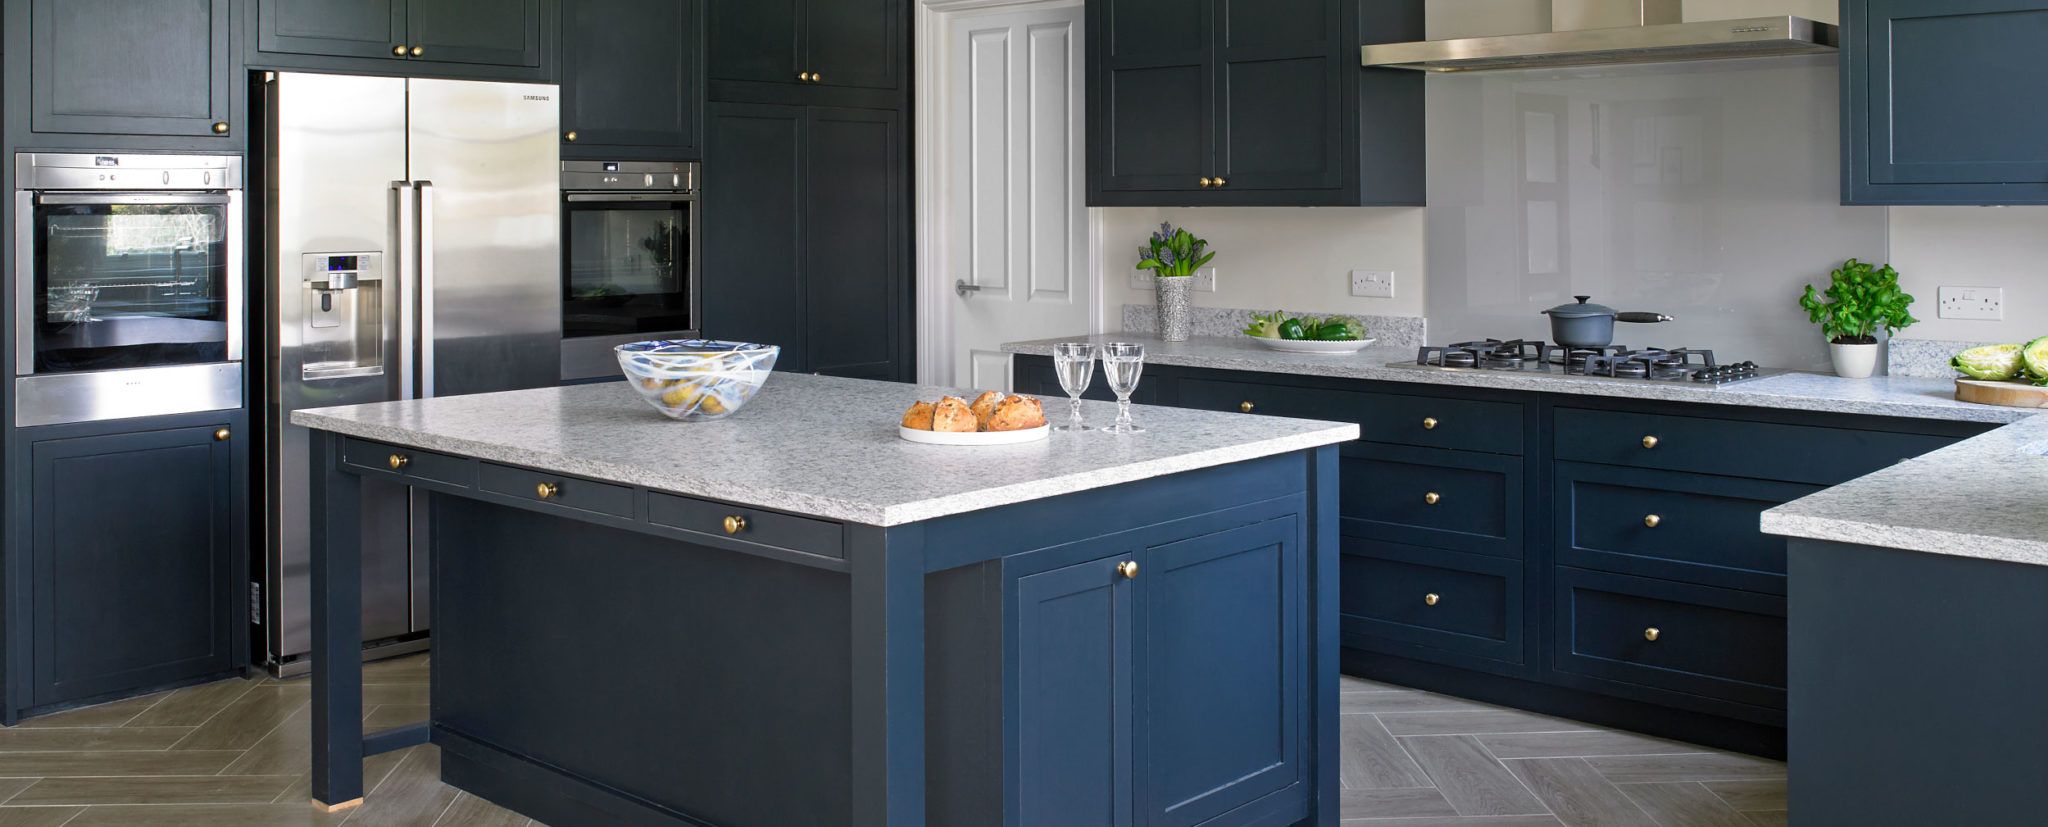 Contemporary shaker kitchen with dark blue cabinets, grey granite worktops, stainless steel appliances and light hardwood chevron flooring.